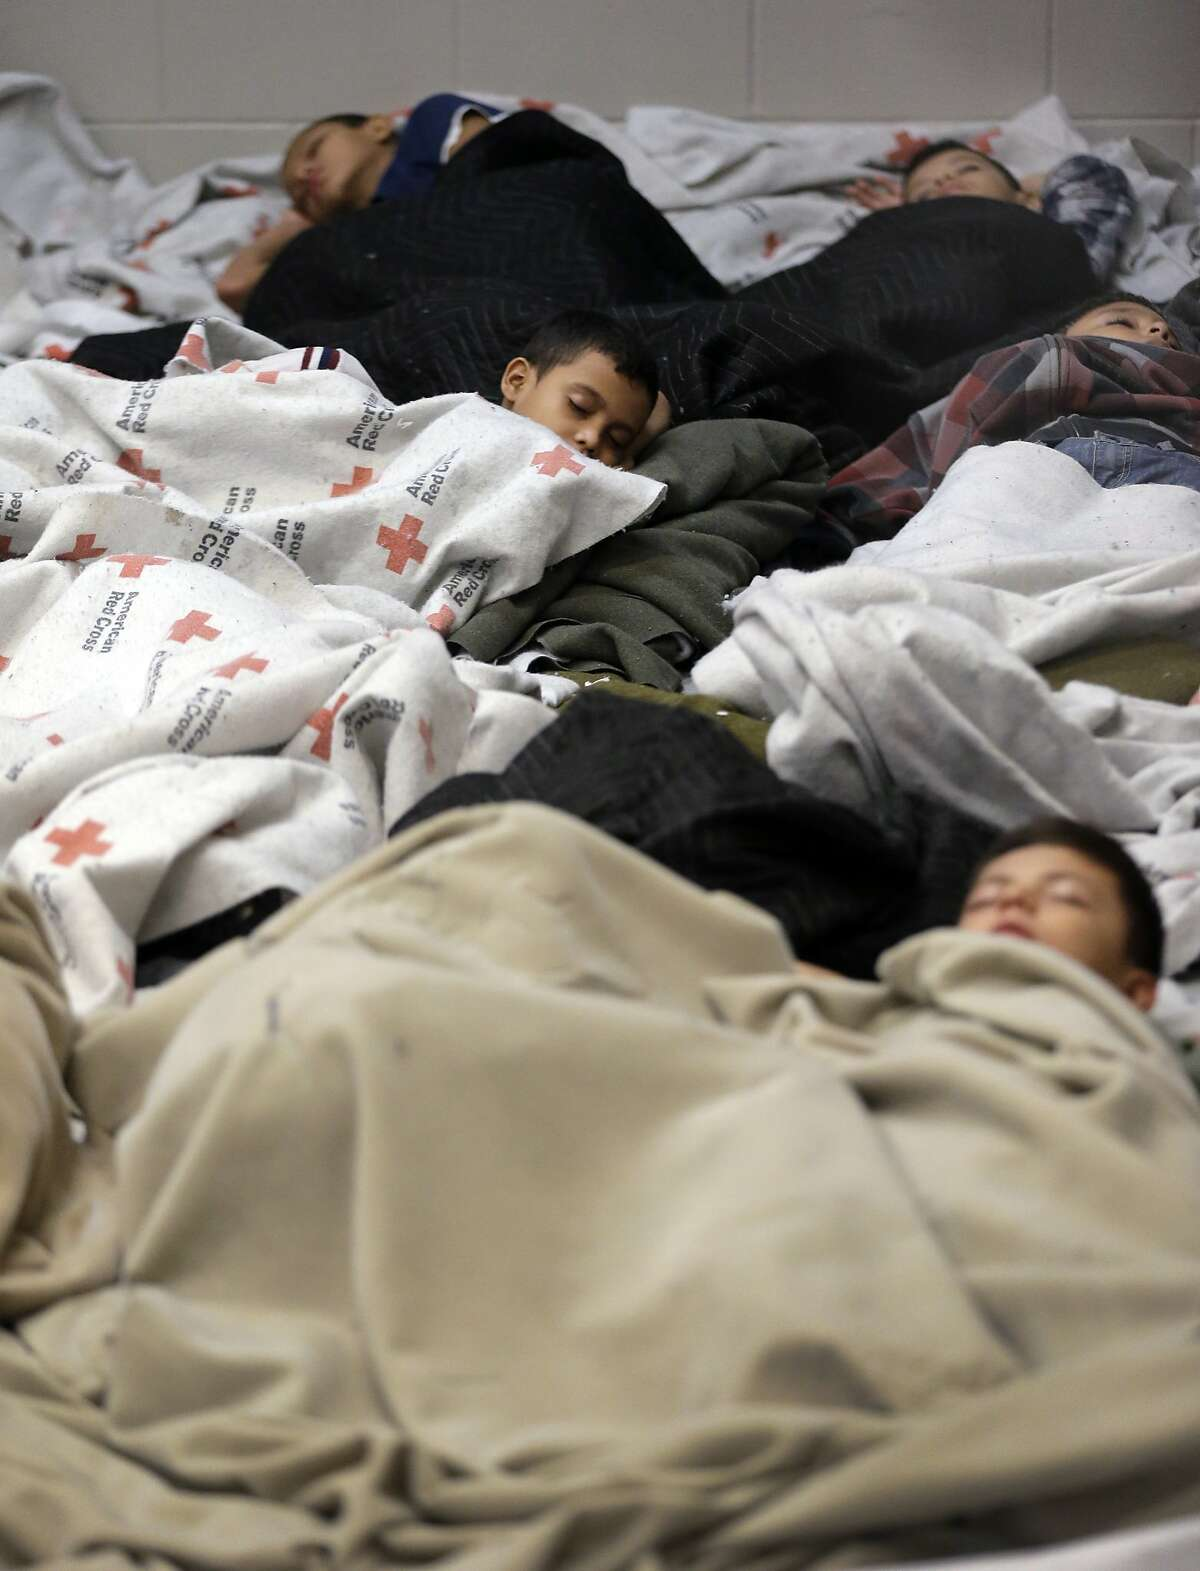 BROWNSVILLE, TX - JUNE 18: A detainees sleep in a holding cell at a U.S. Customs and Border Protection processing facility, on June 18, 2014, in Brownsville,Texas. Brownsville and Nogales, Ariz. have been central to processing the more than 47,000 unaccompanied children who have entered the country illegally since Oct. 1. (Photo by Eric Gay-Pool/Getty Images)